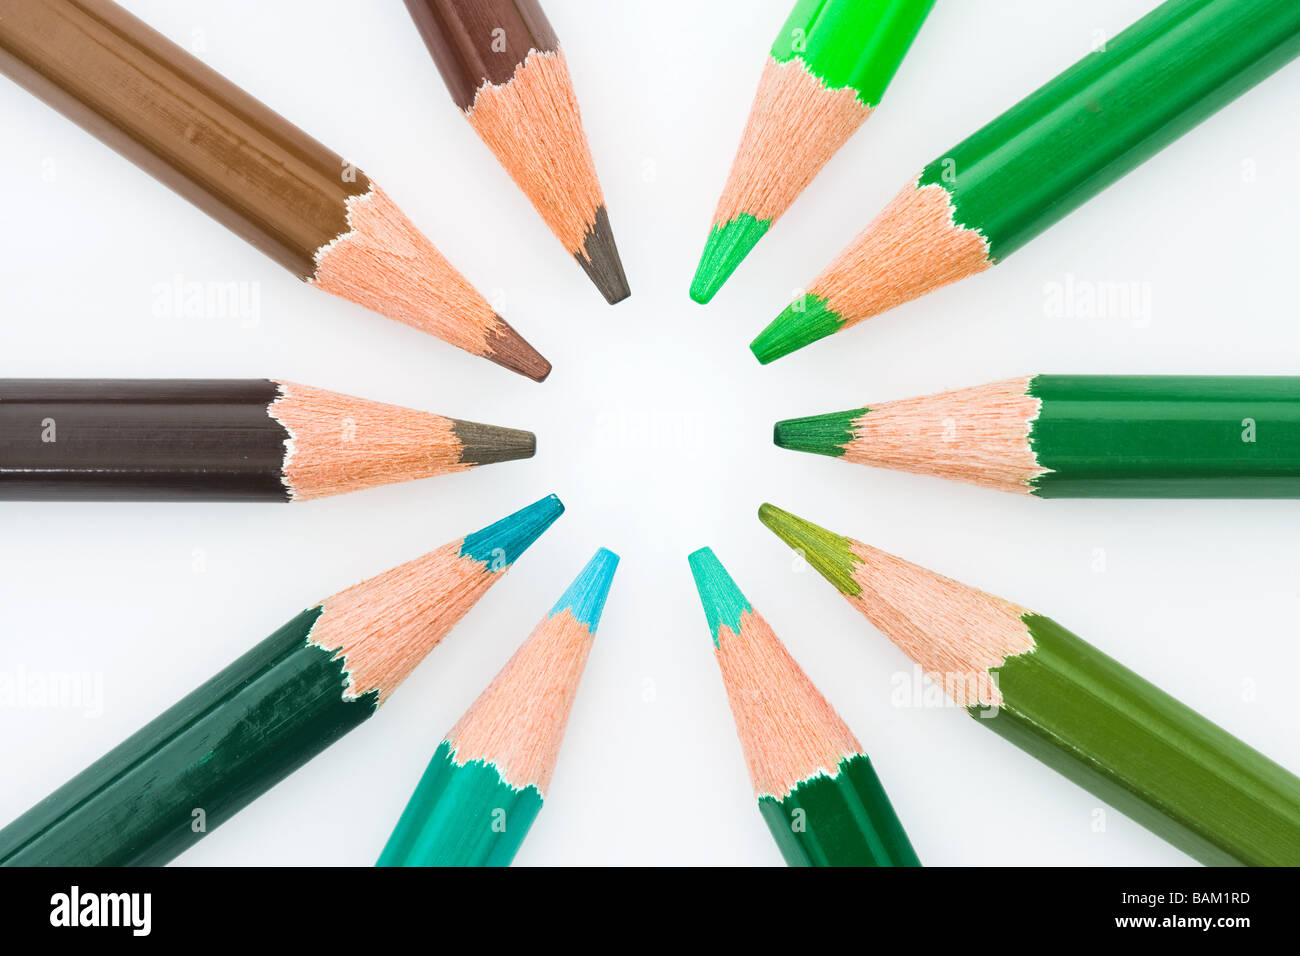 Colouring pencils in a circle - Stock Image